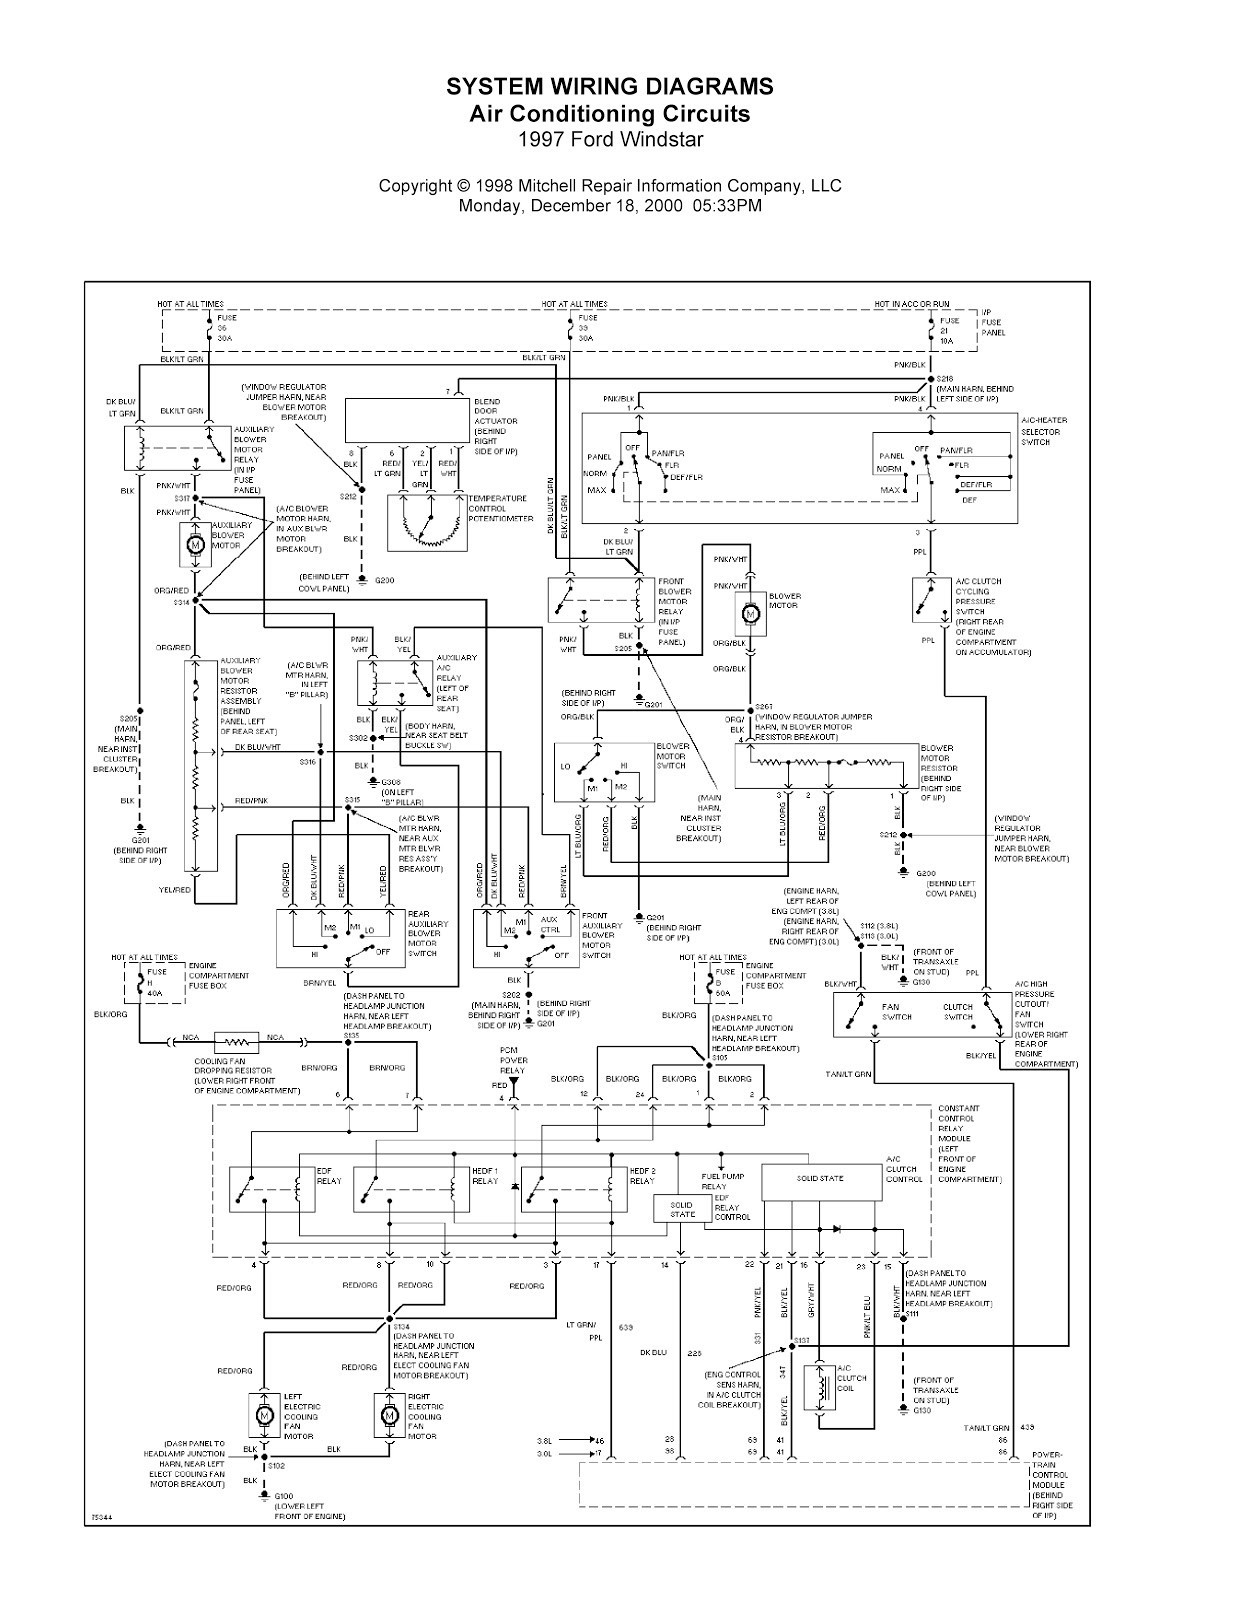 2001 ford Expedition Engine Diagram 2000 ford Windstar Cooling System  Diagram Data Wiring Diagrams • Of